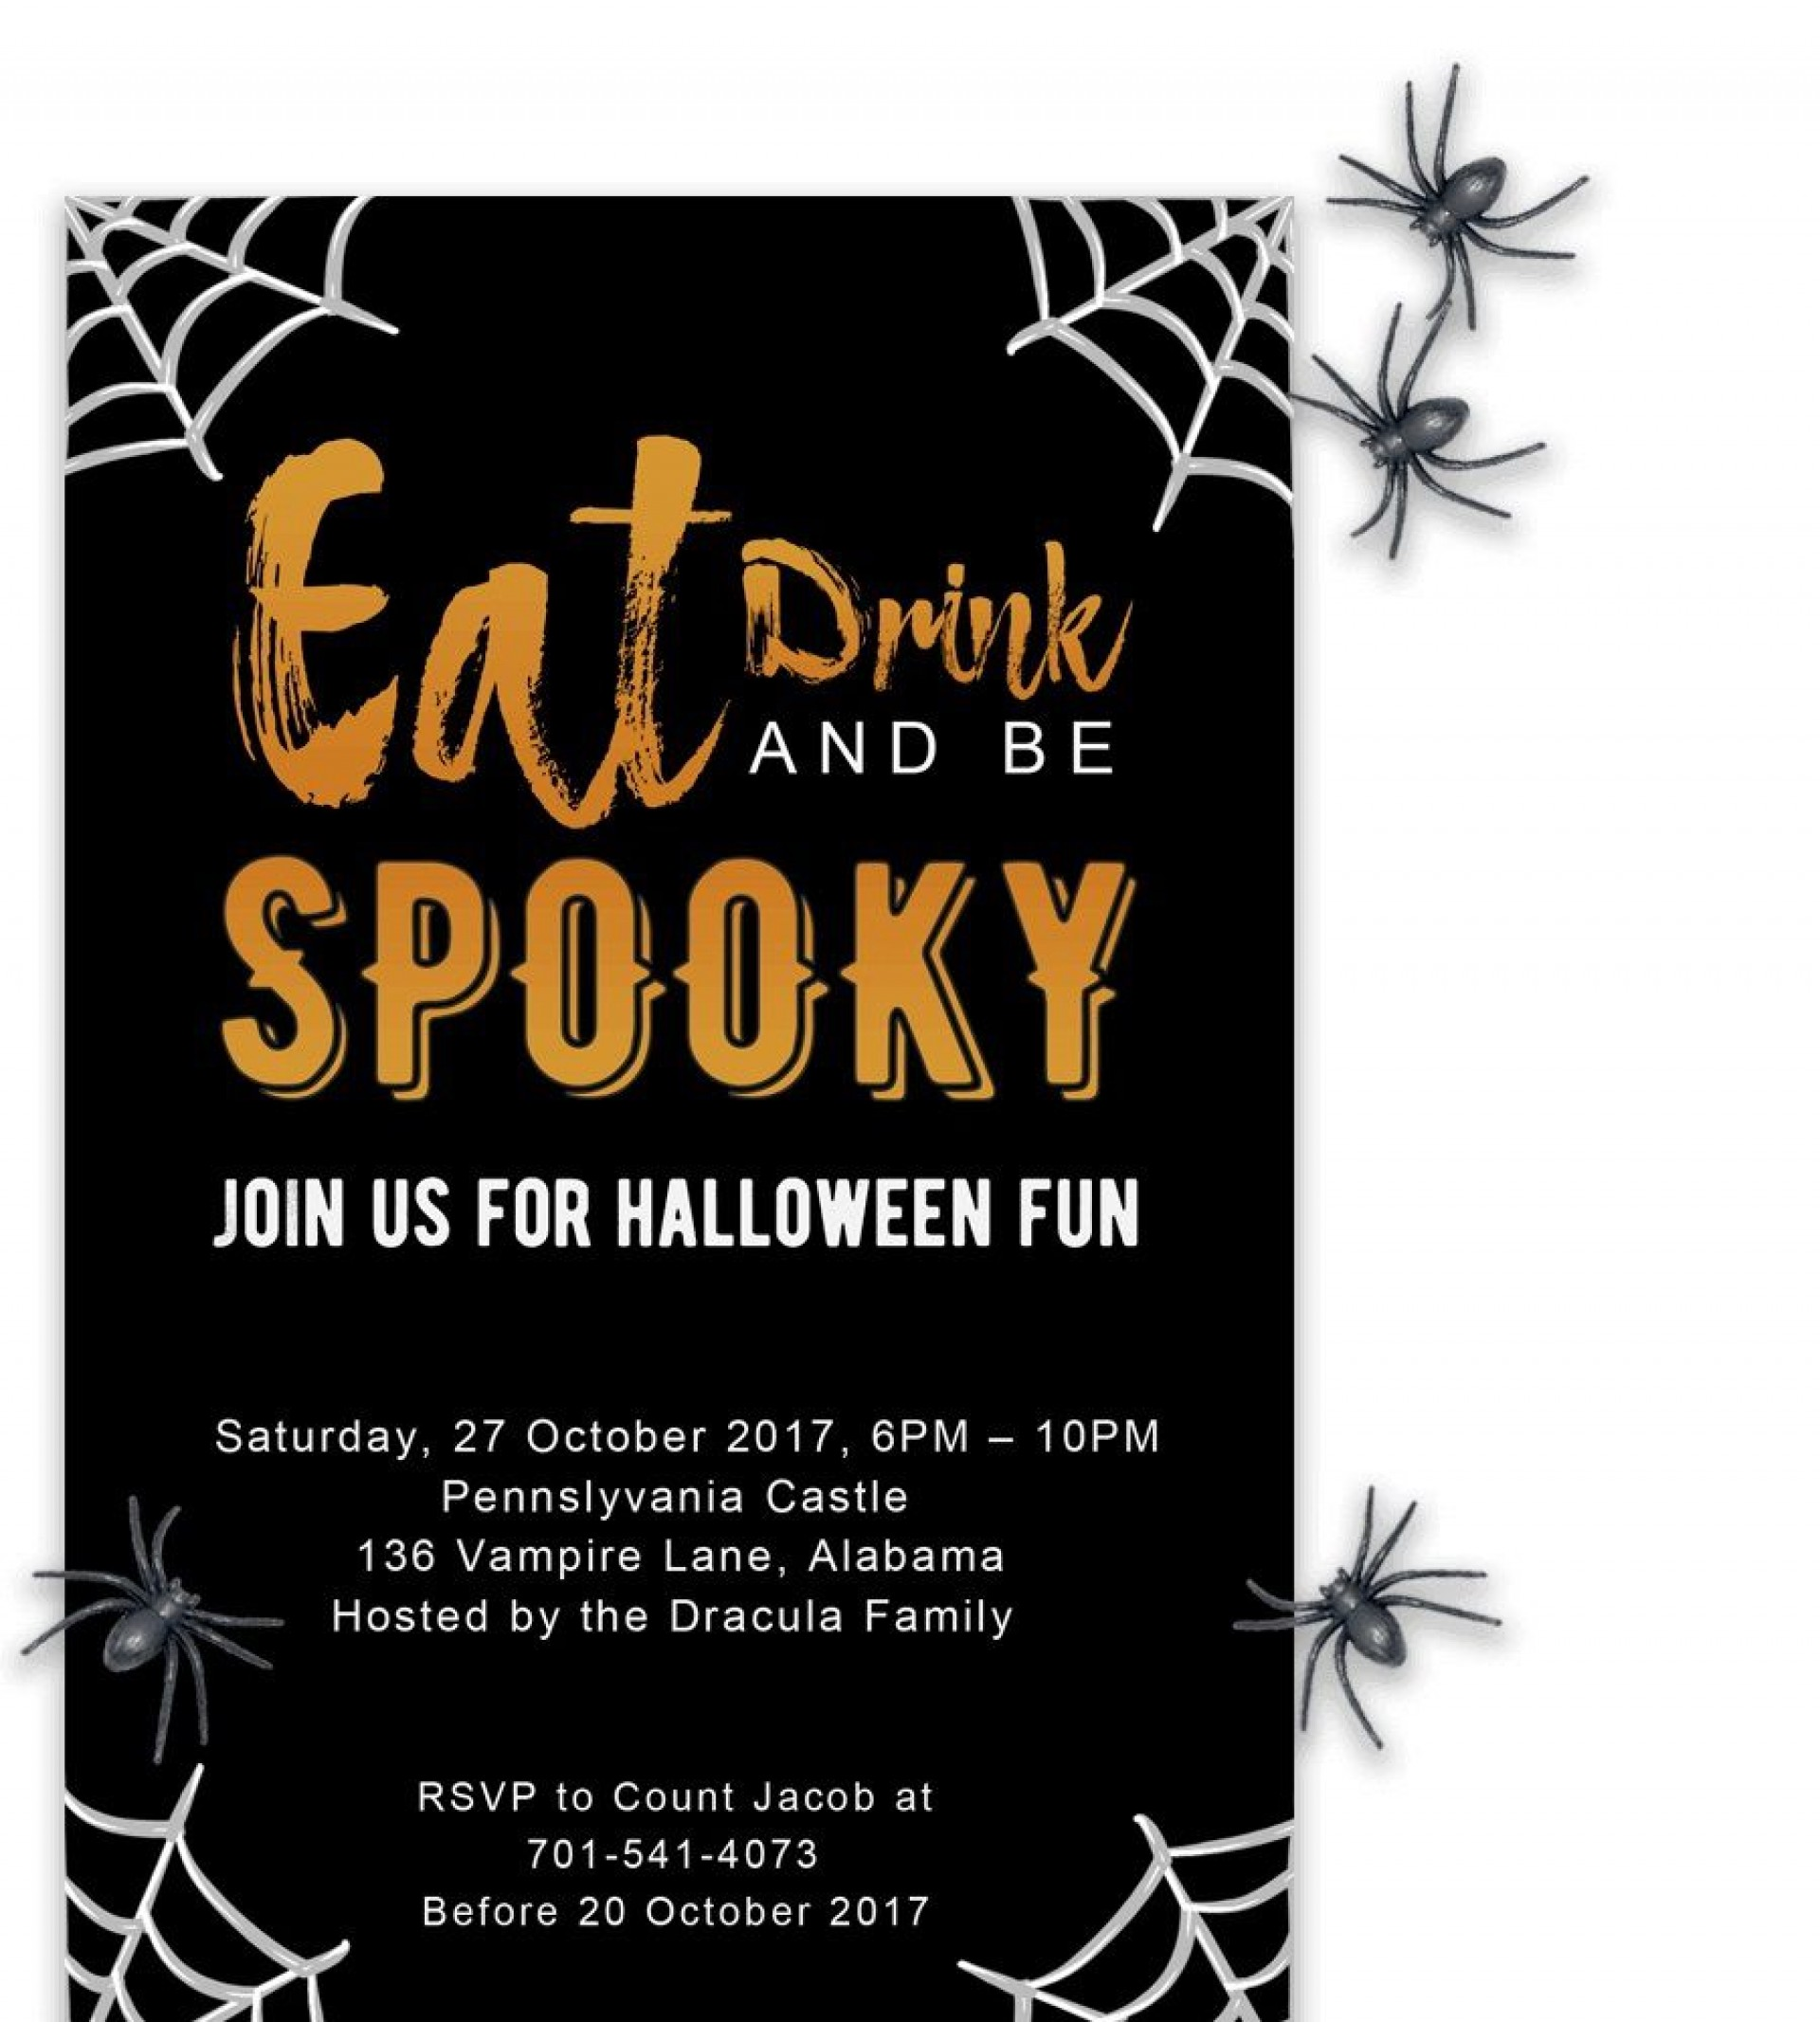 003 Stunning Halloween Party Invite Template Concept  Spooky Invitation Free Printable Birthday Download1920